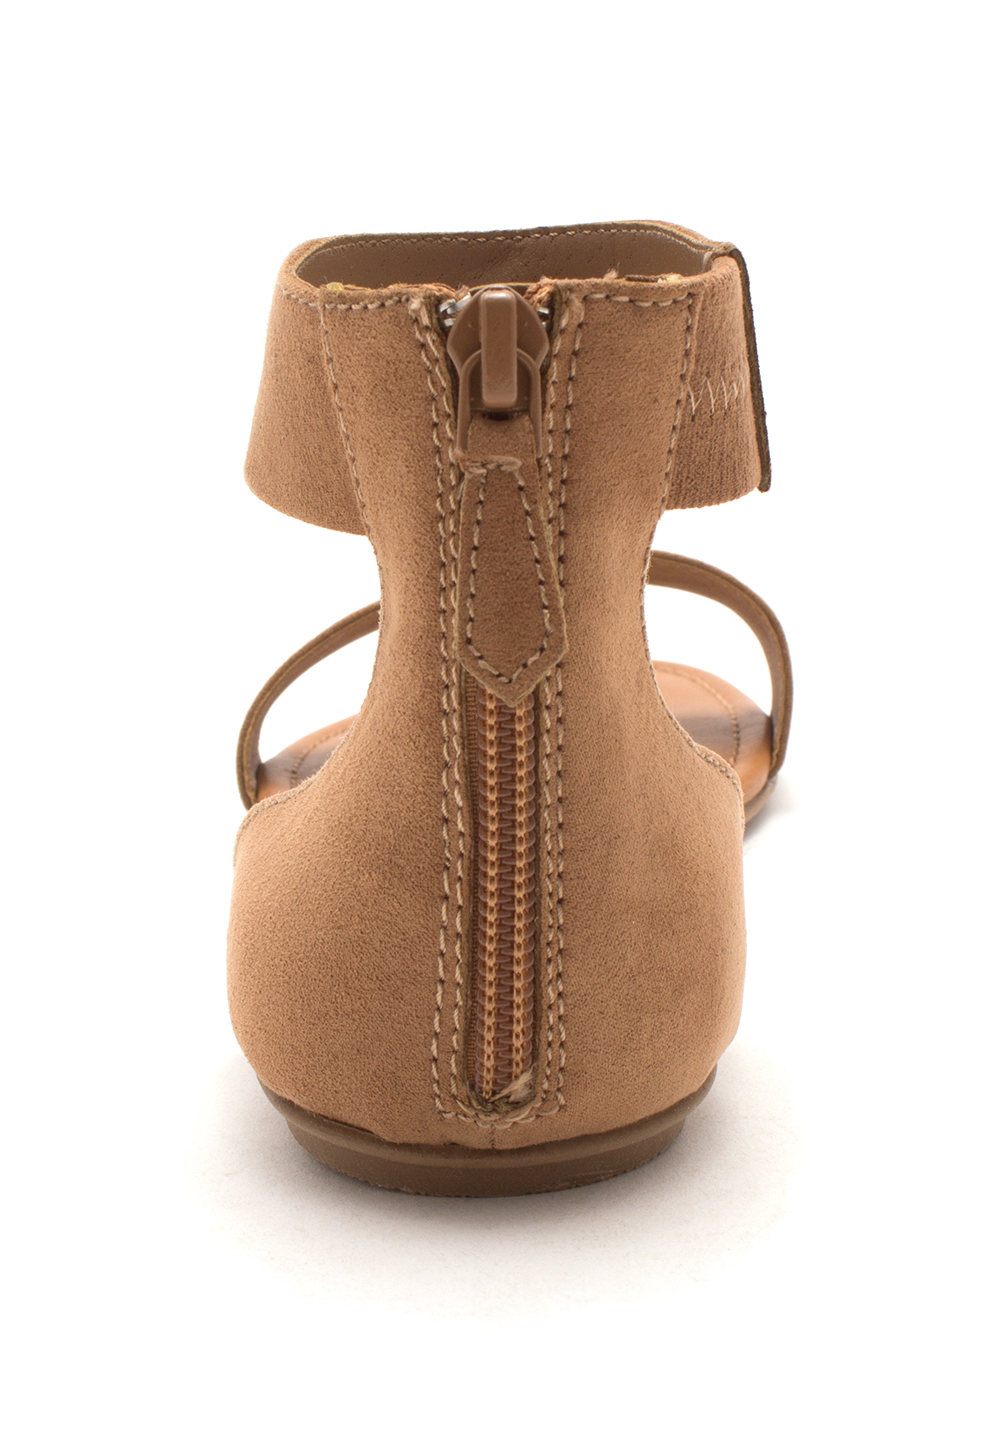 b7946381cc04 American Rag Womens Keley 2 Open Toe Casual Ankle Strap Sandals